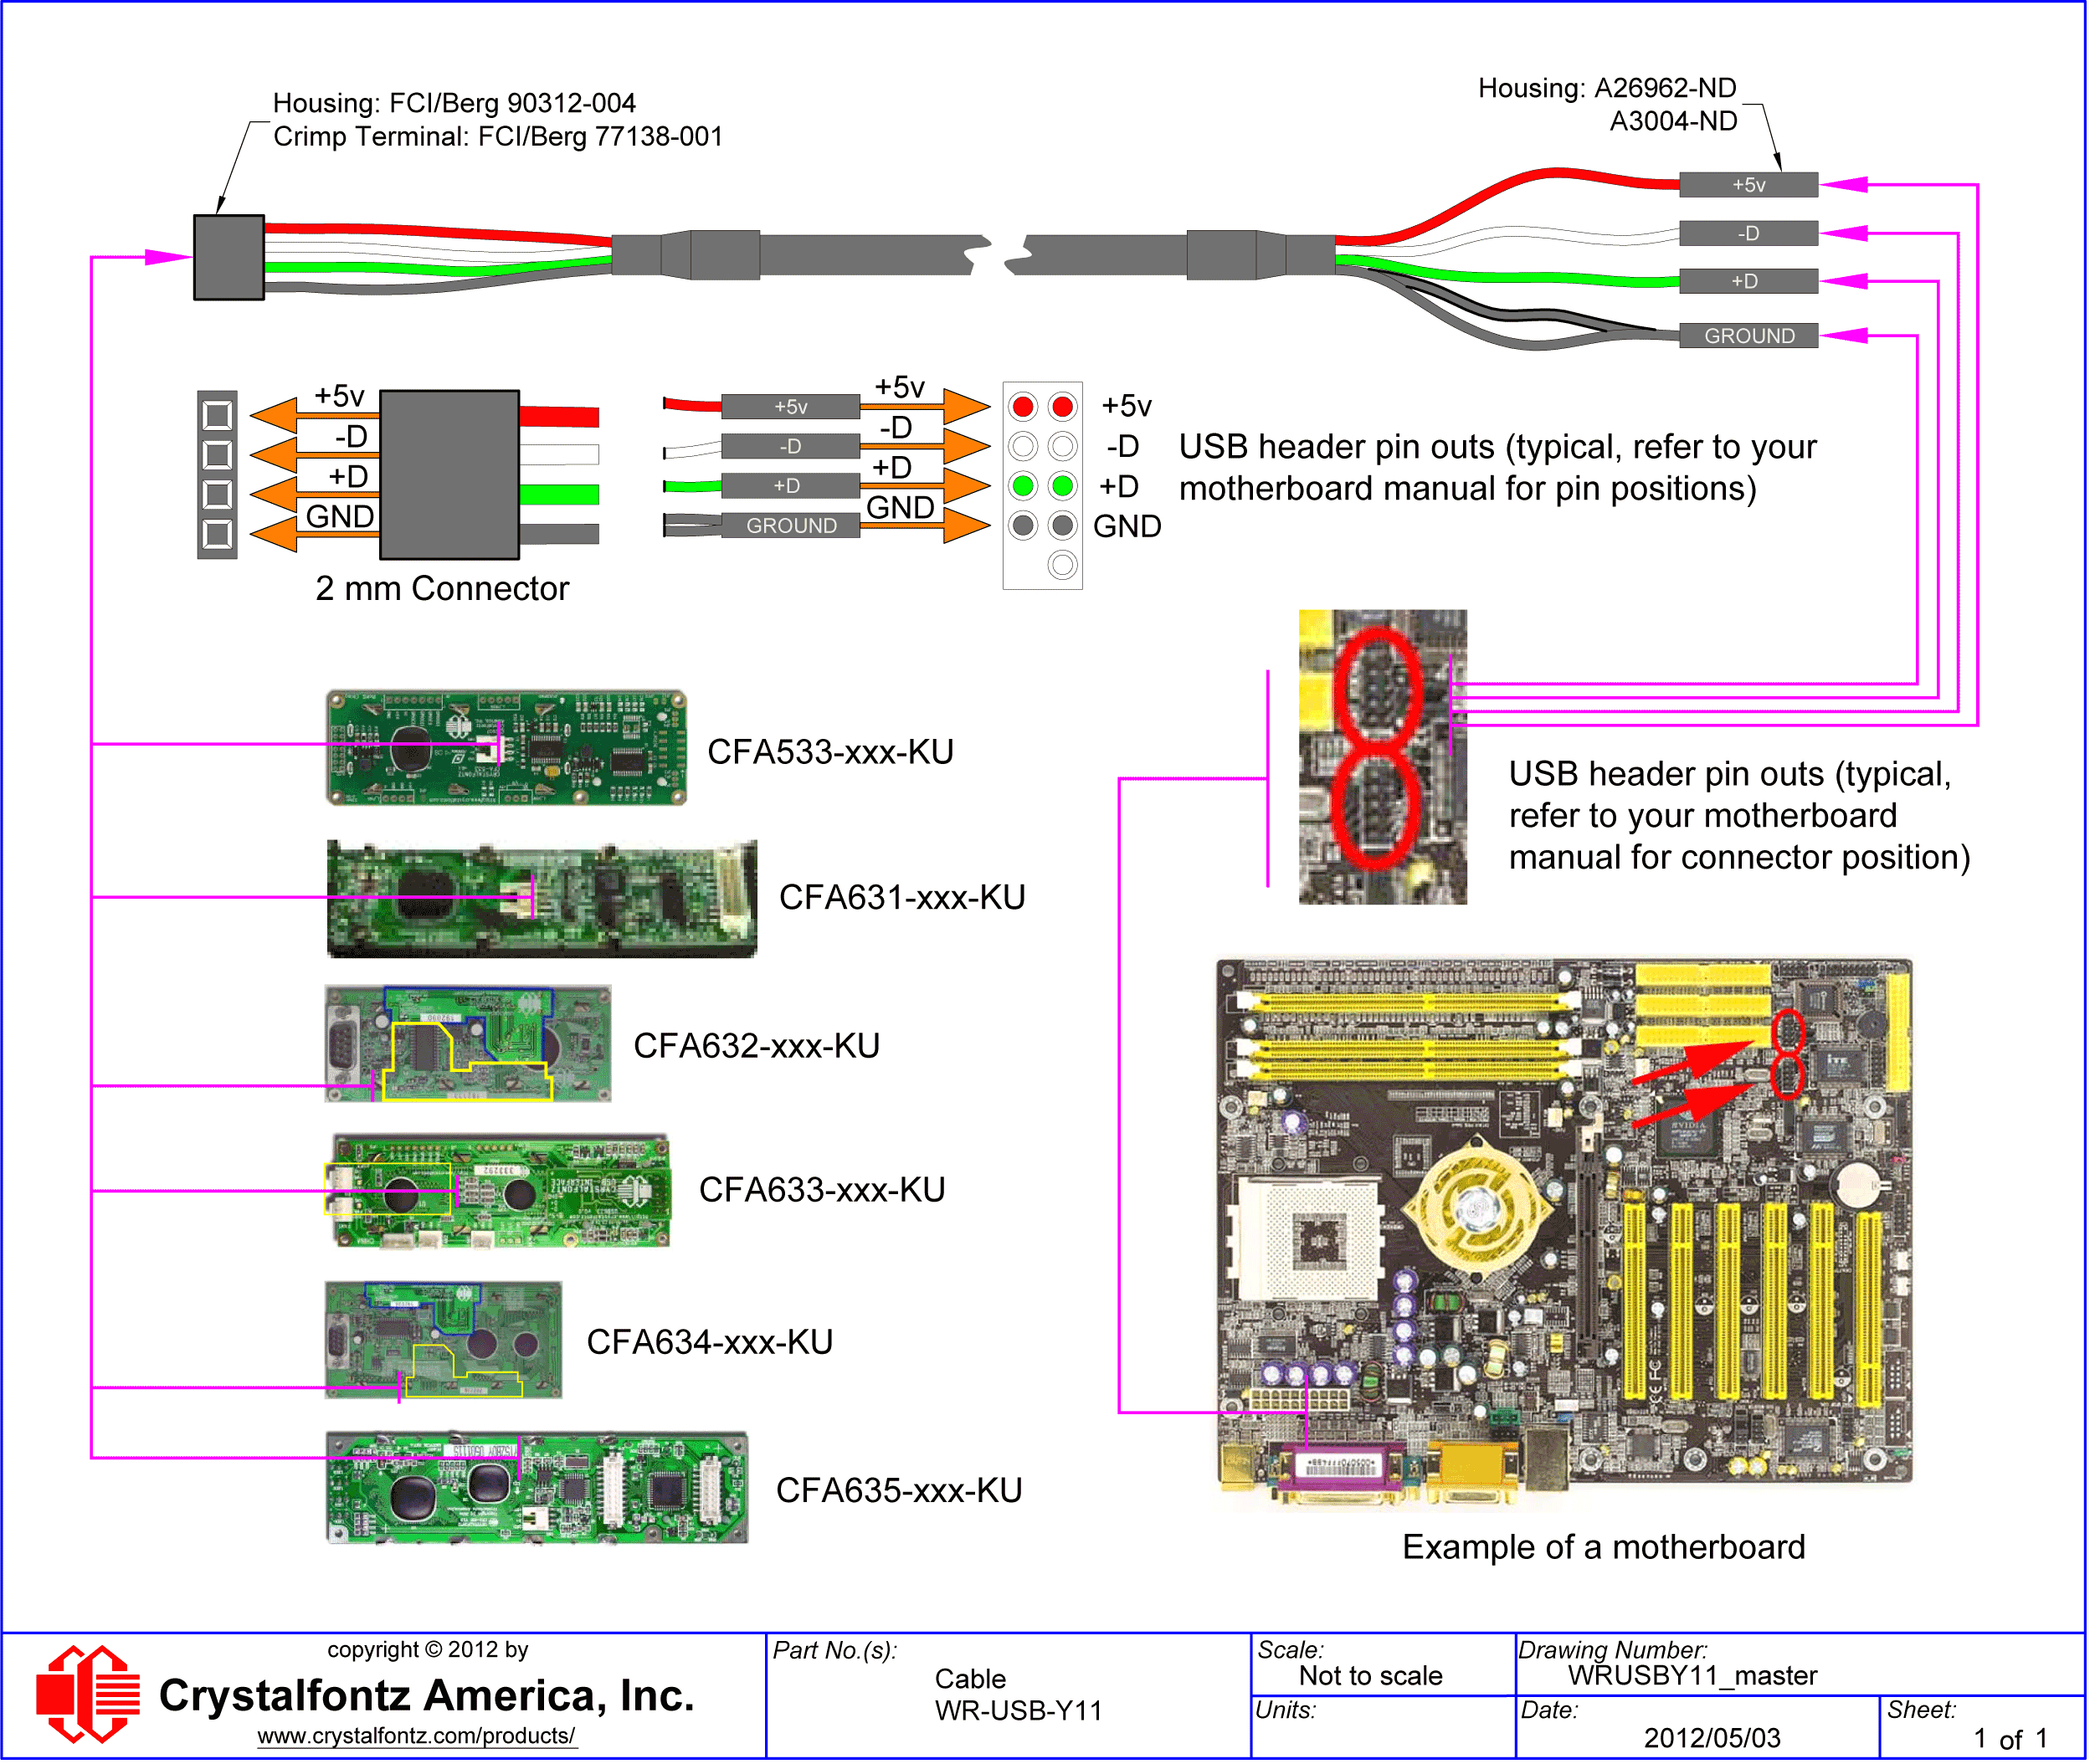 Ps 2 To Usb Wiring Diagram | Manual E-Books - Wiring Diagram For Ps2 Controller To Usb